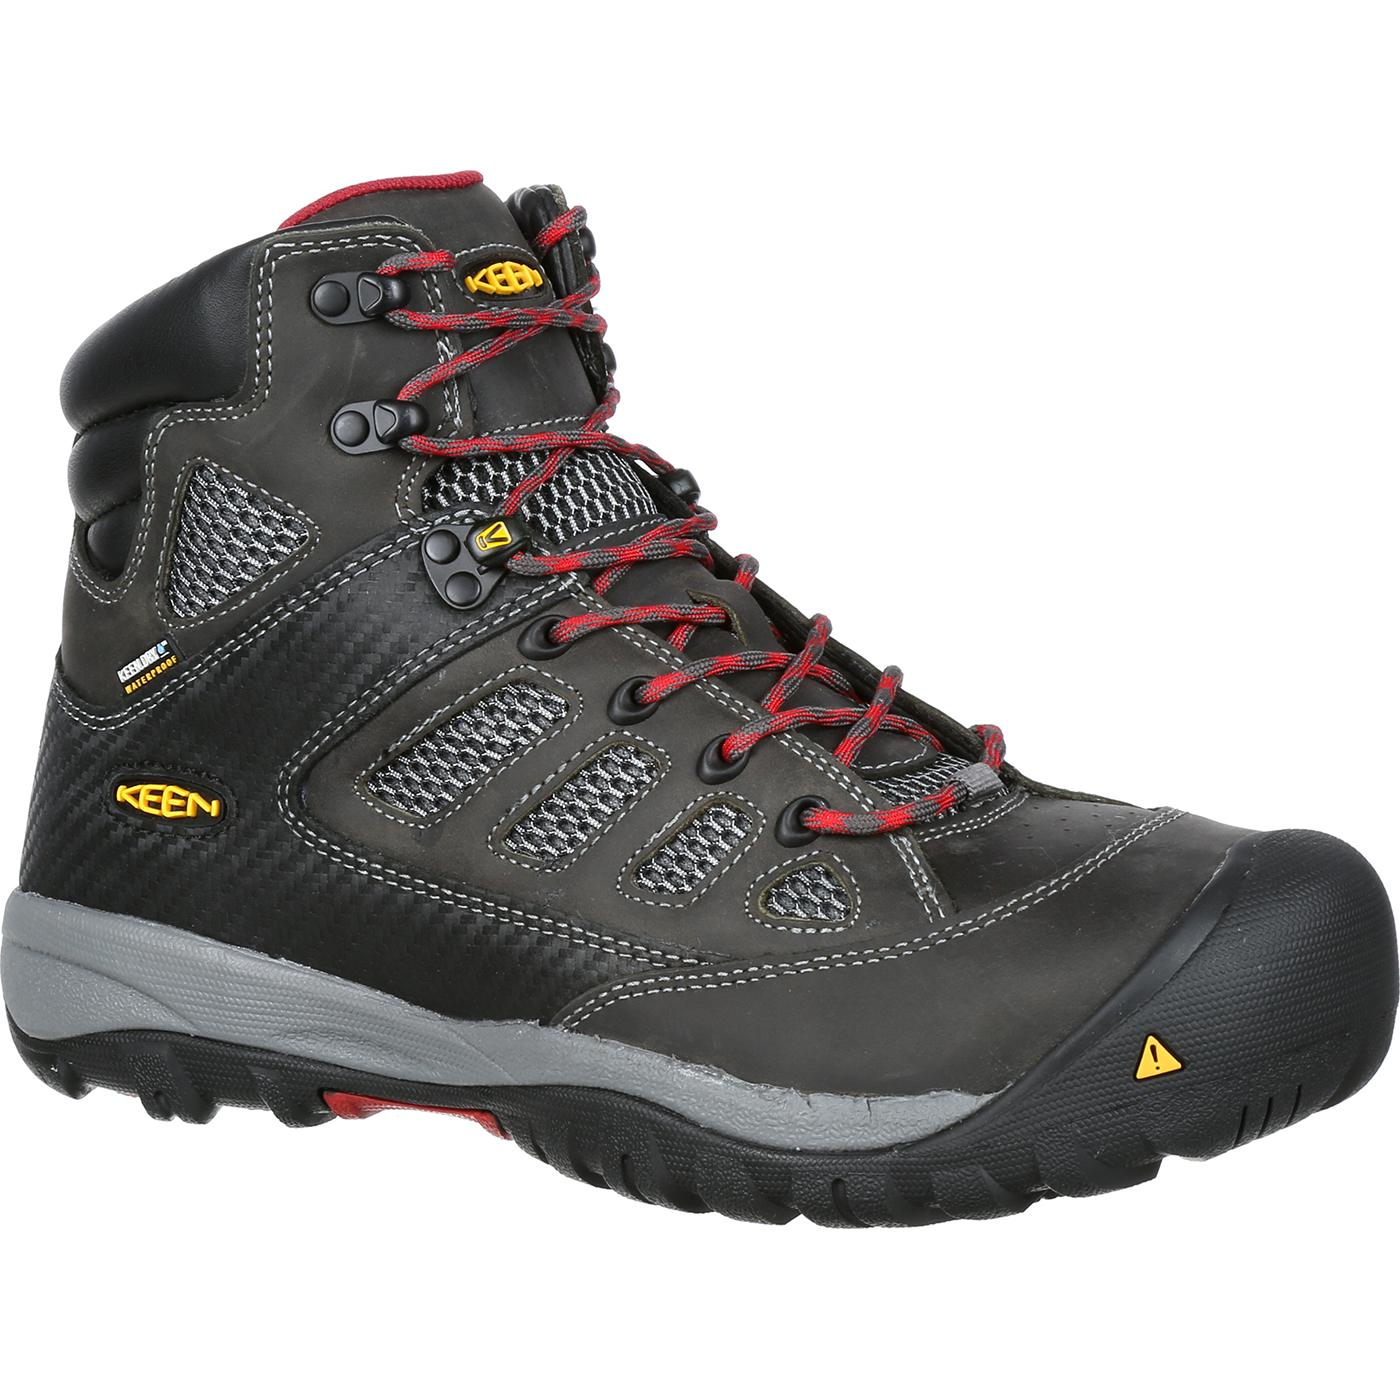 Keen Safety Shoes For Men